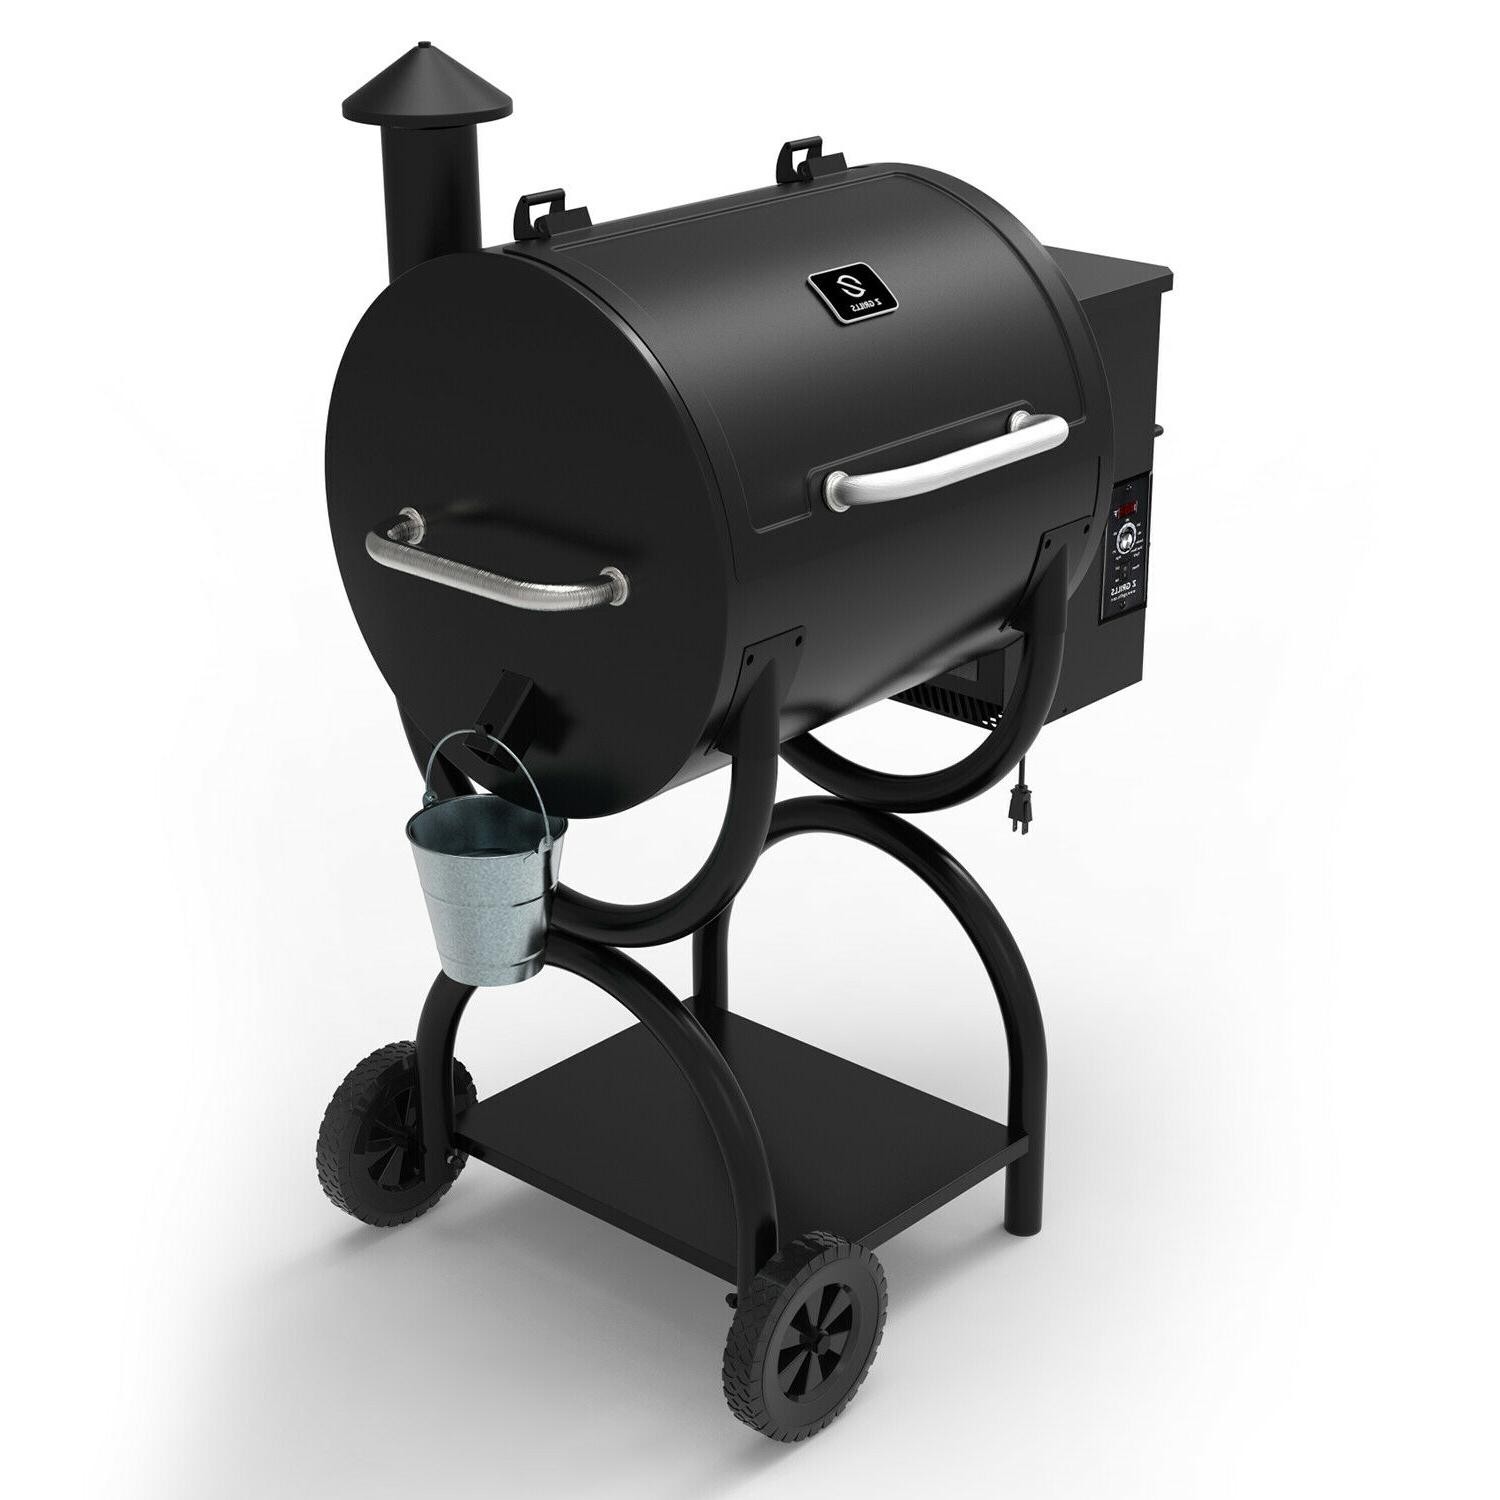 Z GRILLS Pellet Grill with Digital